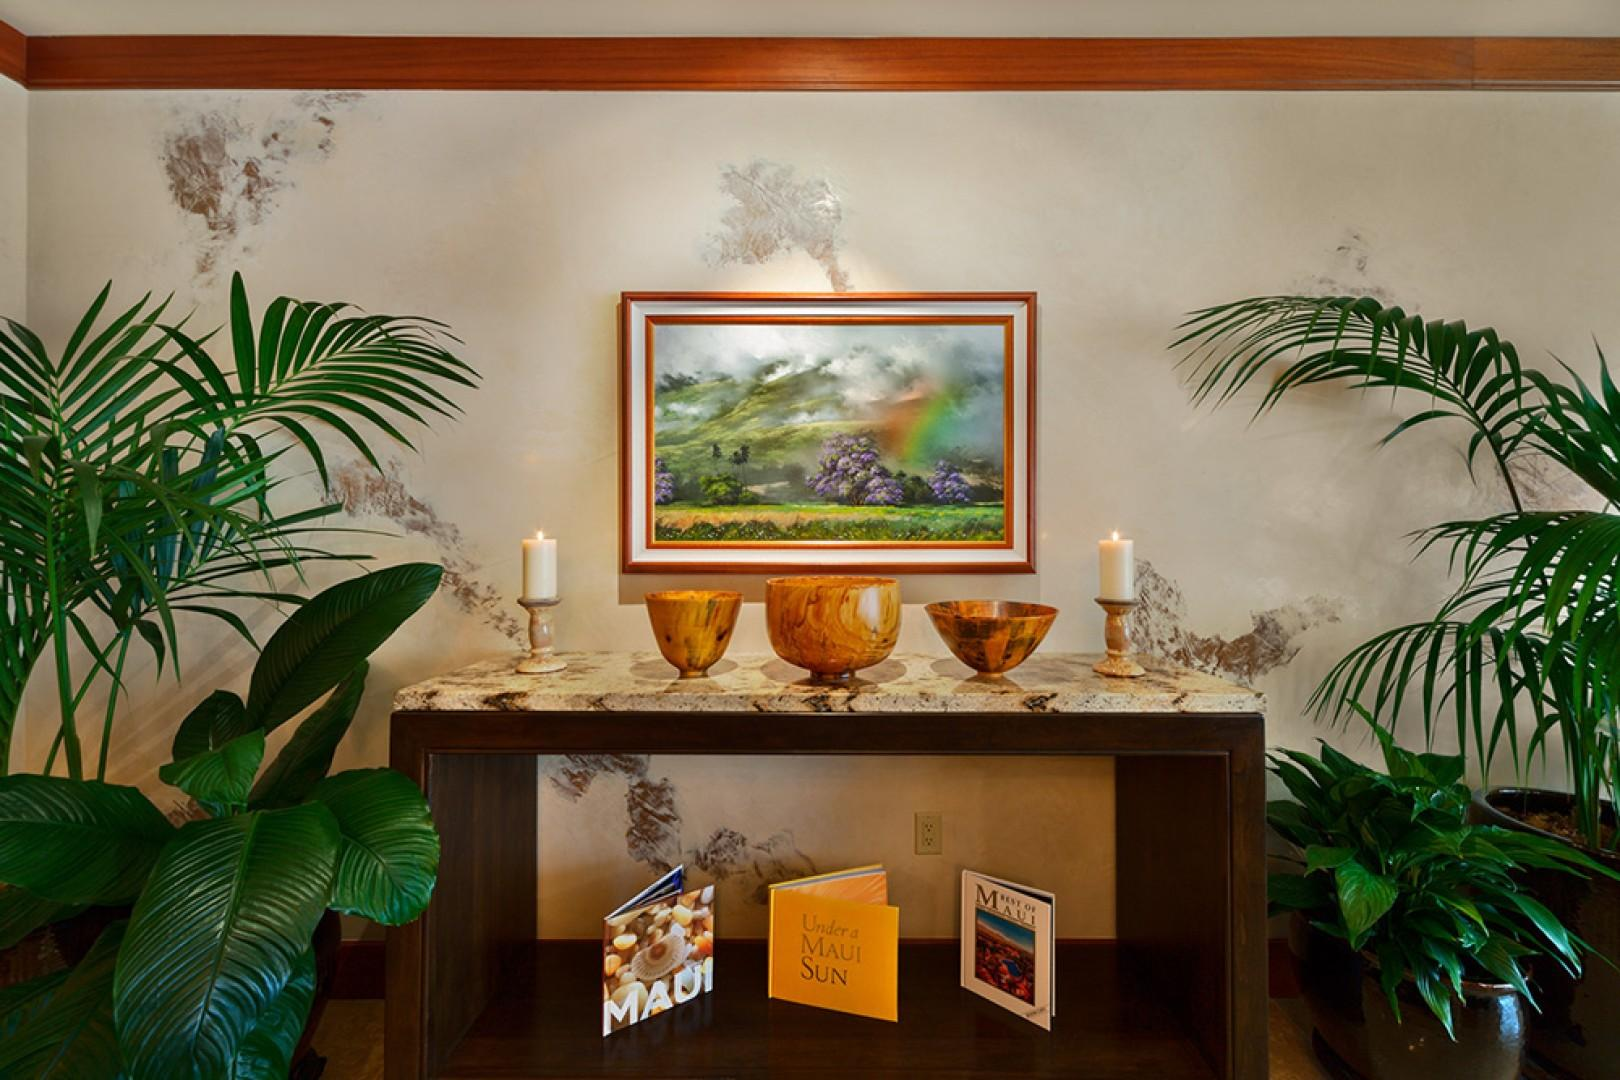 A201 Royal Ilima - Granite Buffet At Dining Table. Original Art, Pacific Rim and Tropical Artifacts, Gallery-Quality Decor